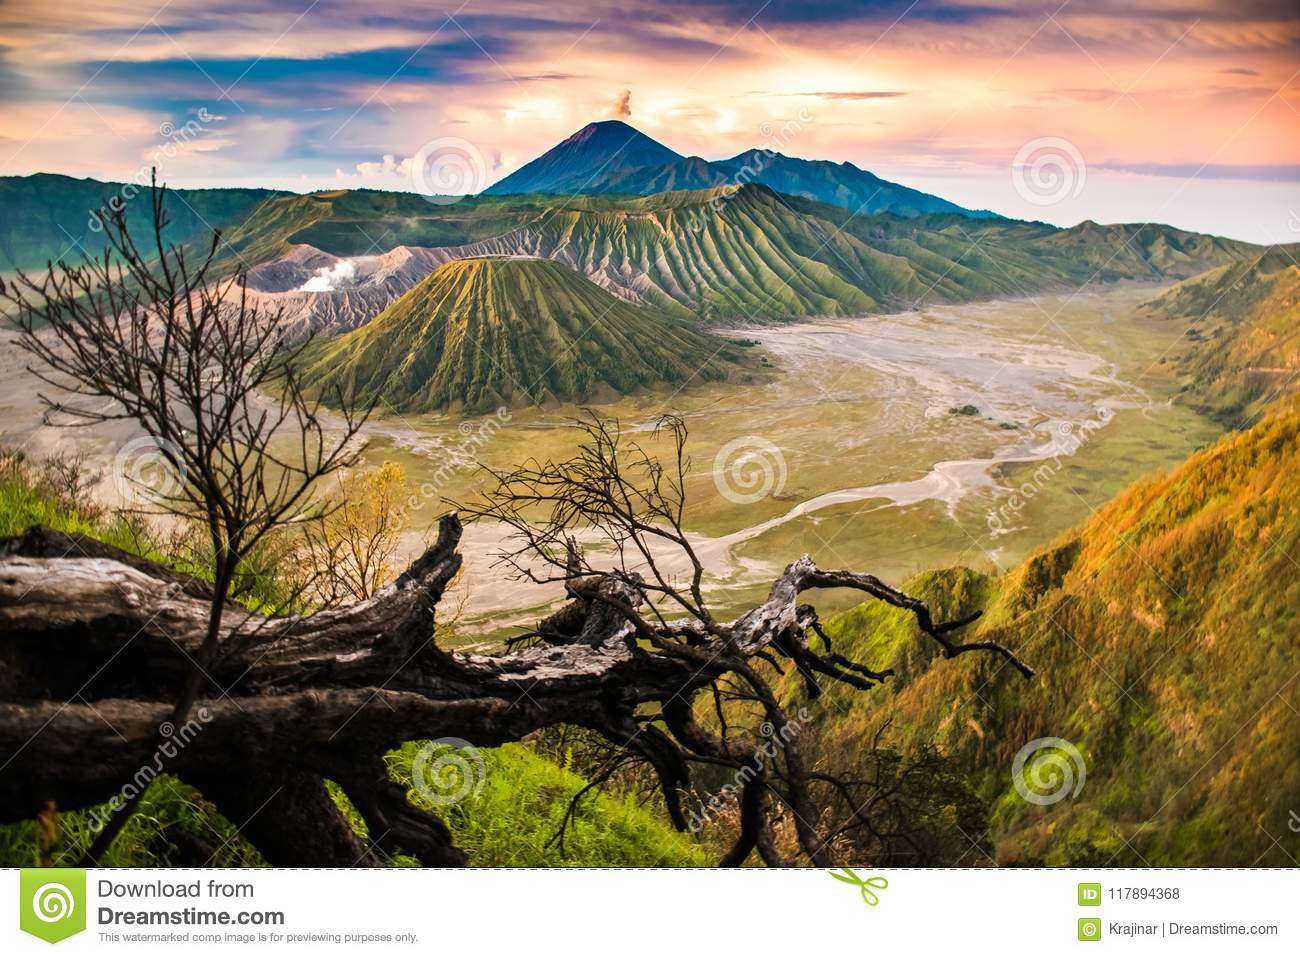 Beautiful sunrise viewpoint with a tree Mount Bromo, East Java, Indonesia